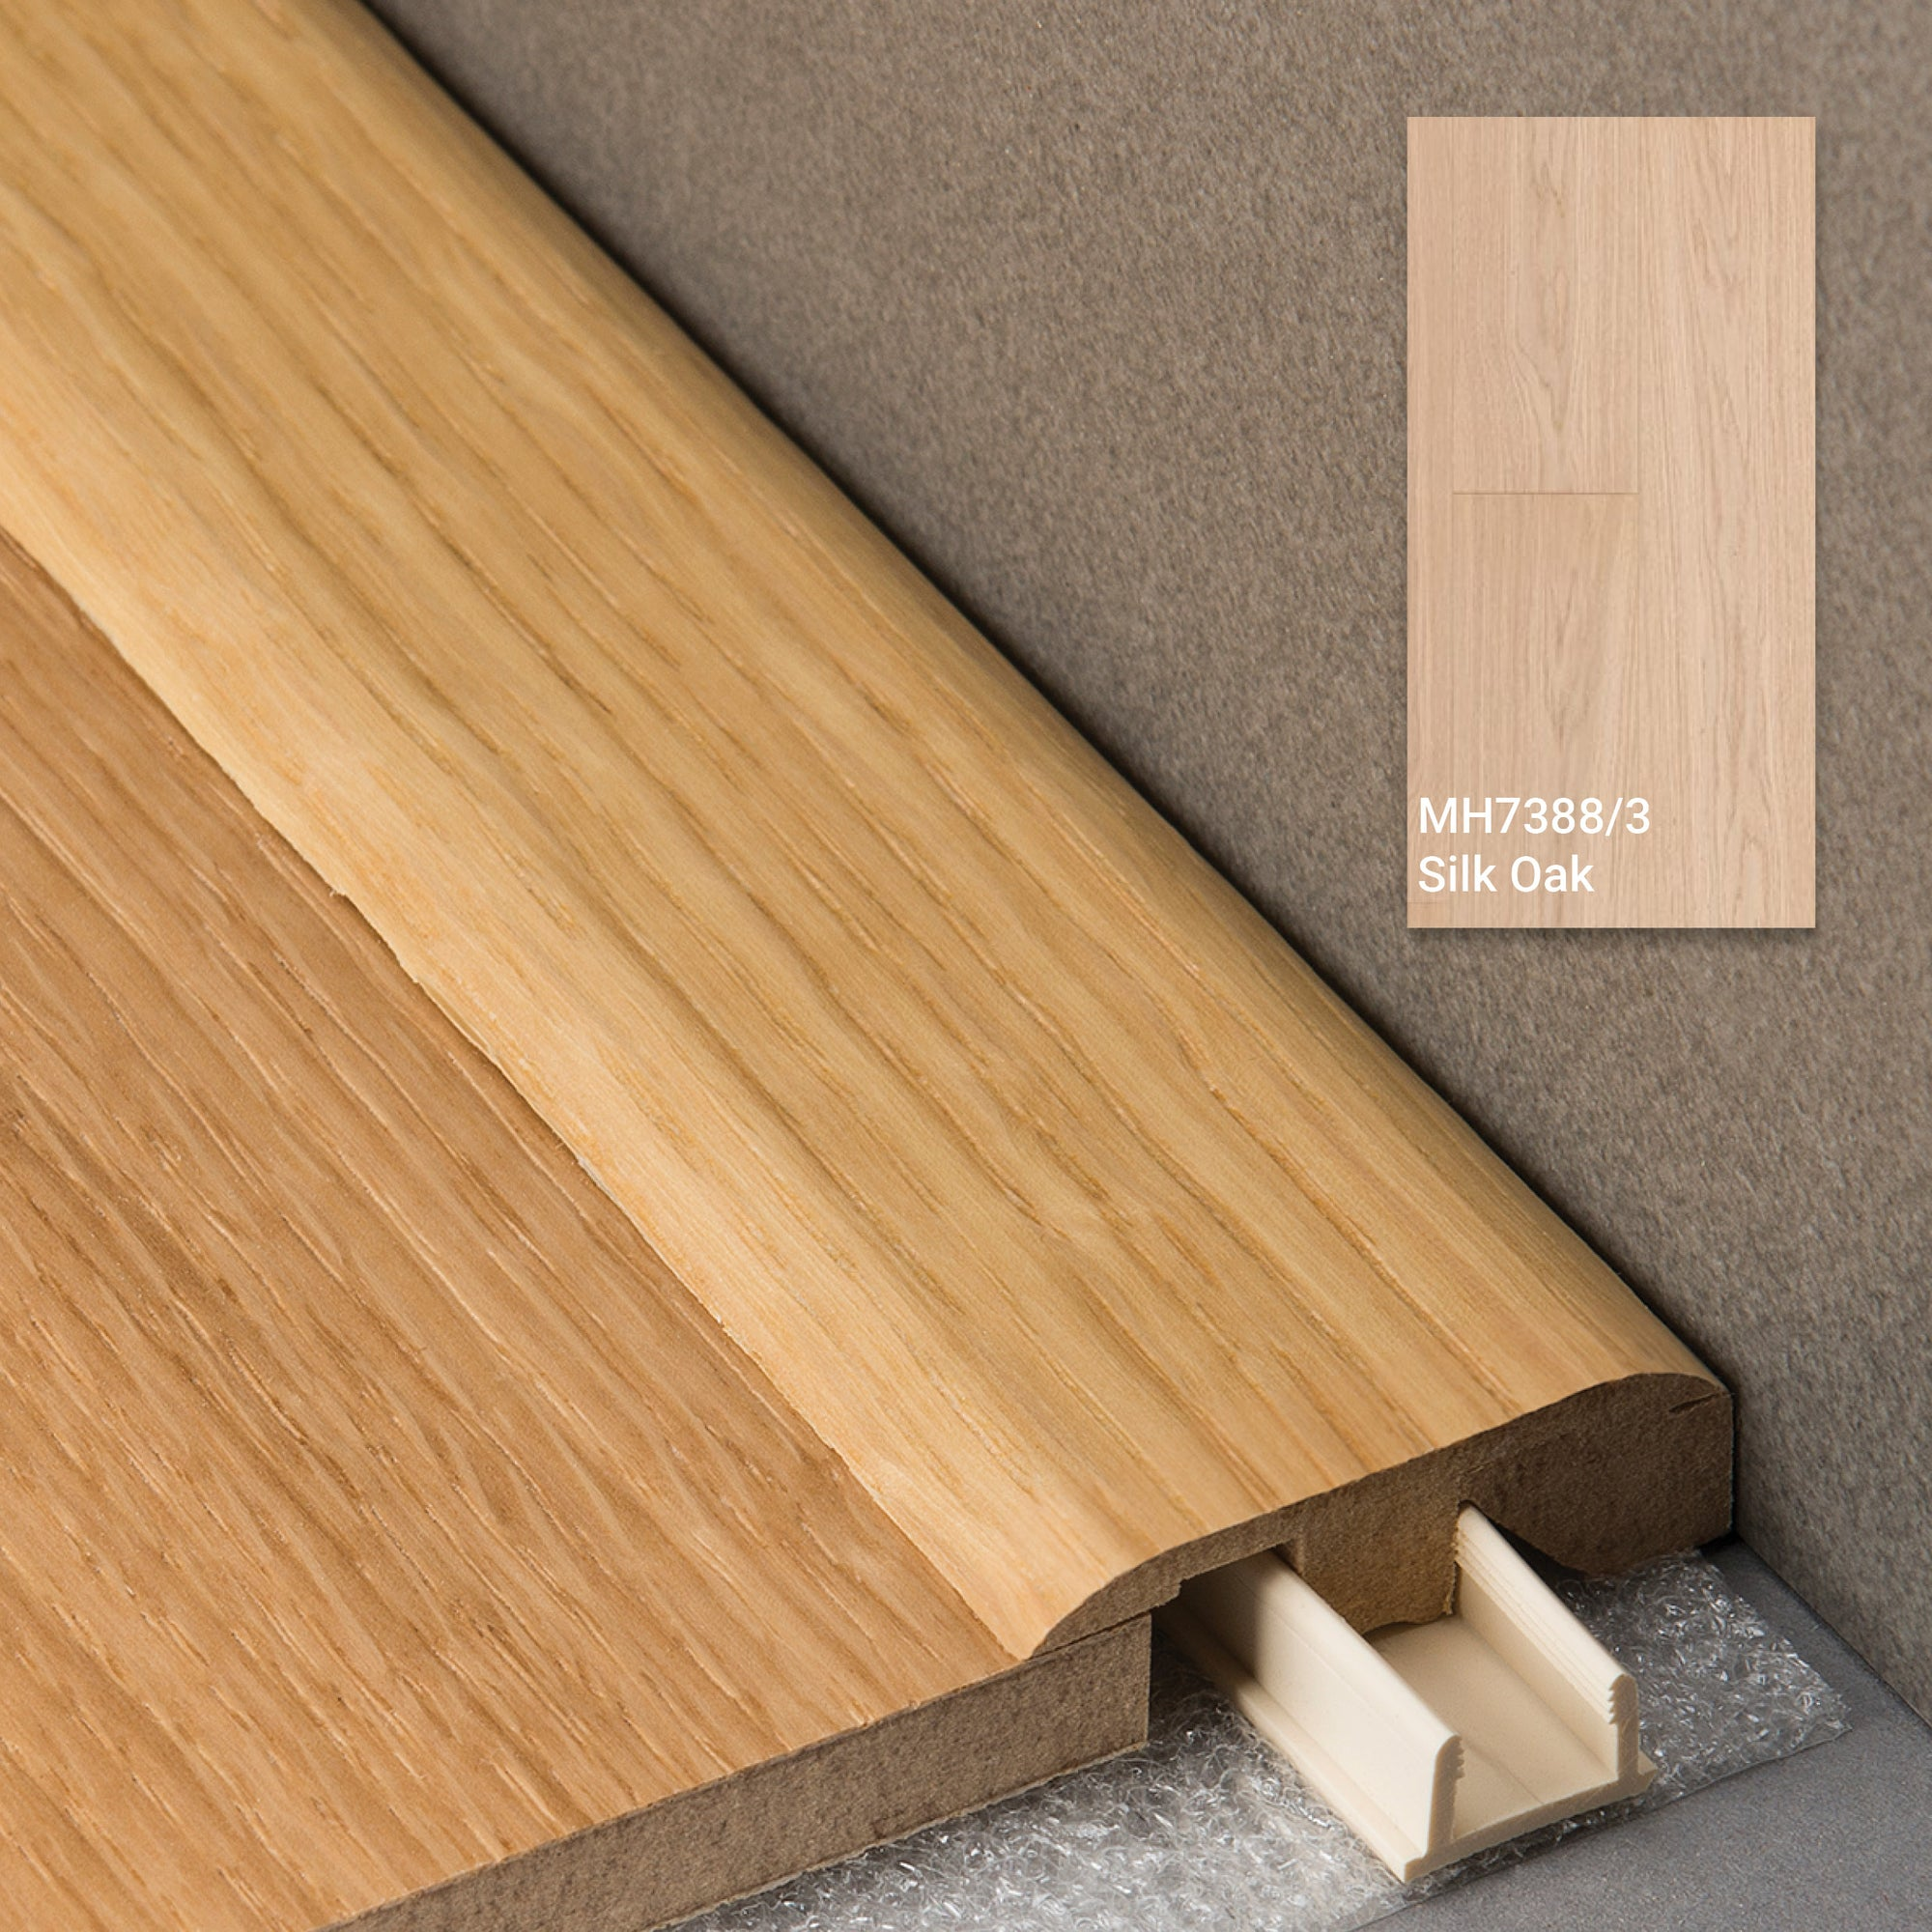 3 in 1 Profile Silk Oak 2150mm Length